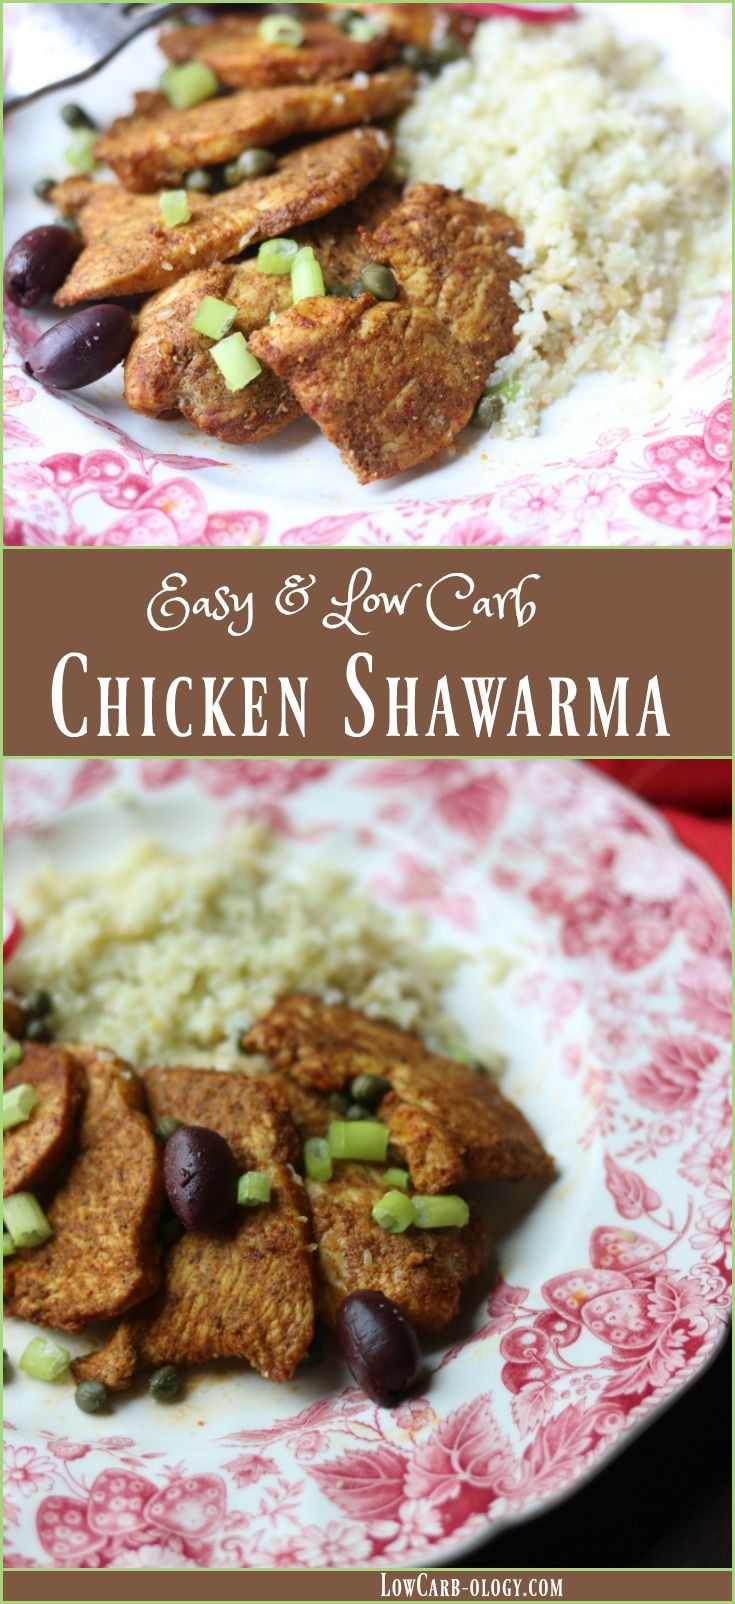 Learn to make this easy chicken shawarma recipe at home. Less than 2 carbs and SO yummy! From Lowcarb-ology.com